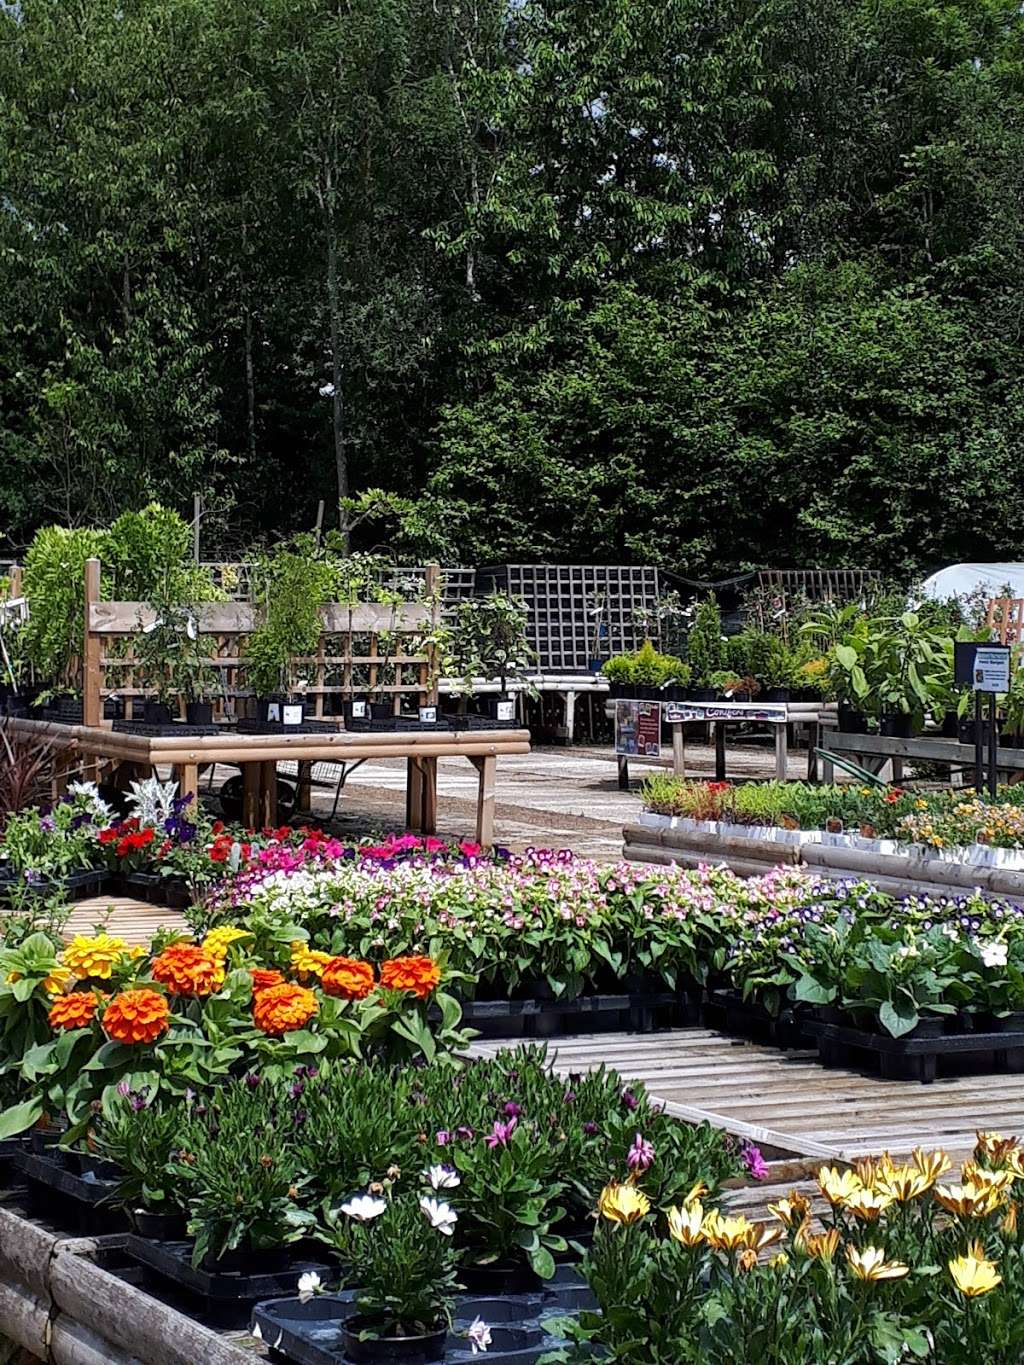 Buckland Nurseries Garden Centre - store  | Photo 4 of 10 | Address: Reigate Rd, Reigate, Betchworth RH2 9RE, UK | Phone: 01737 242990